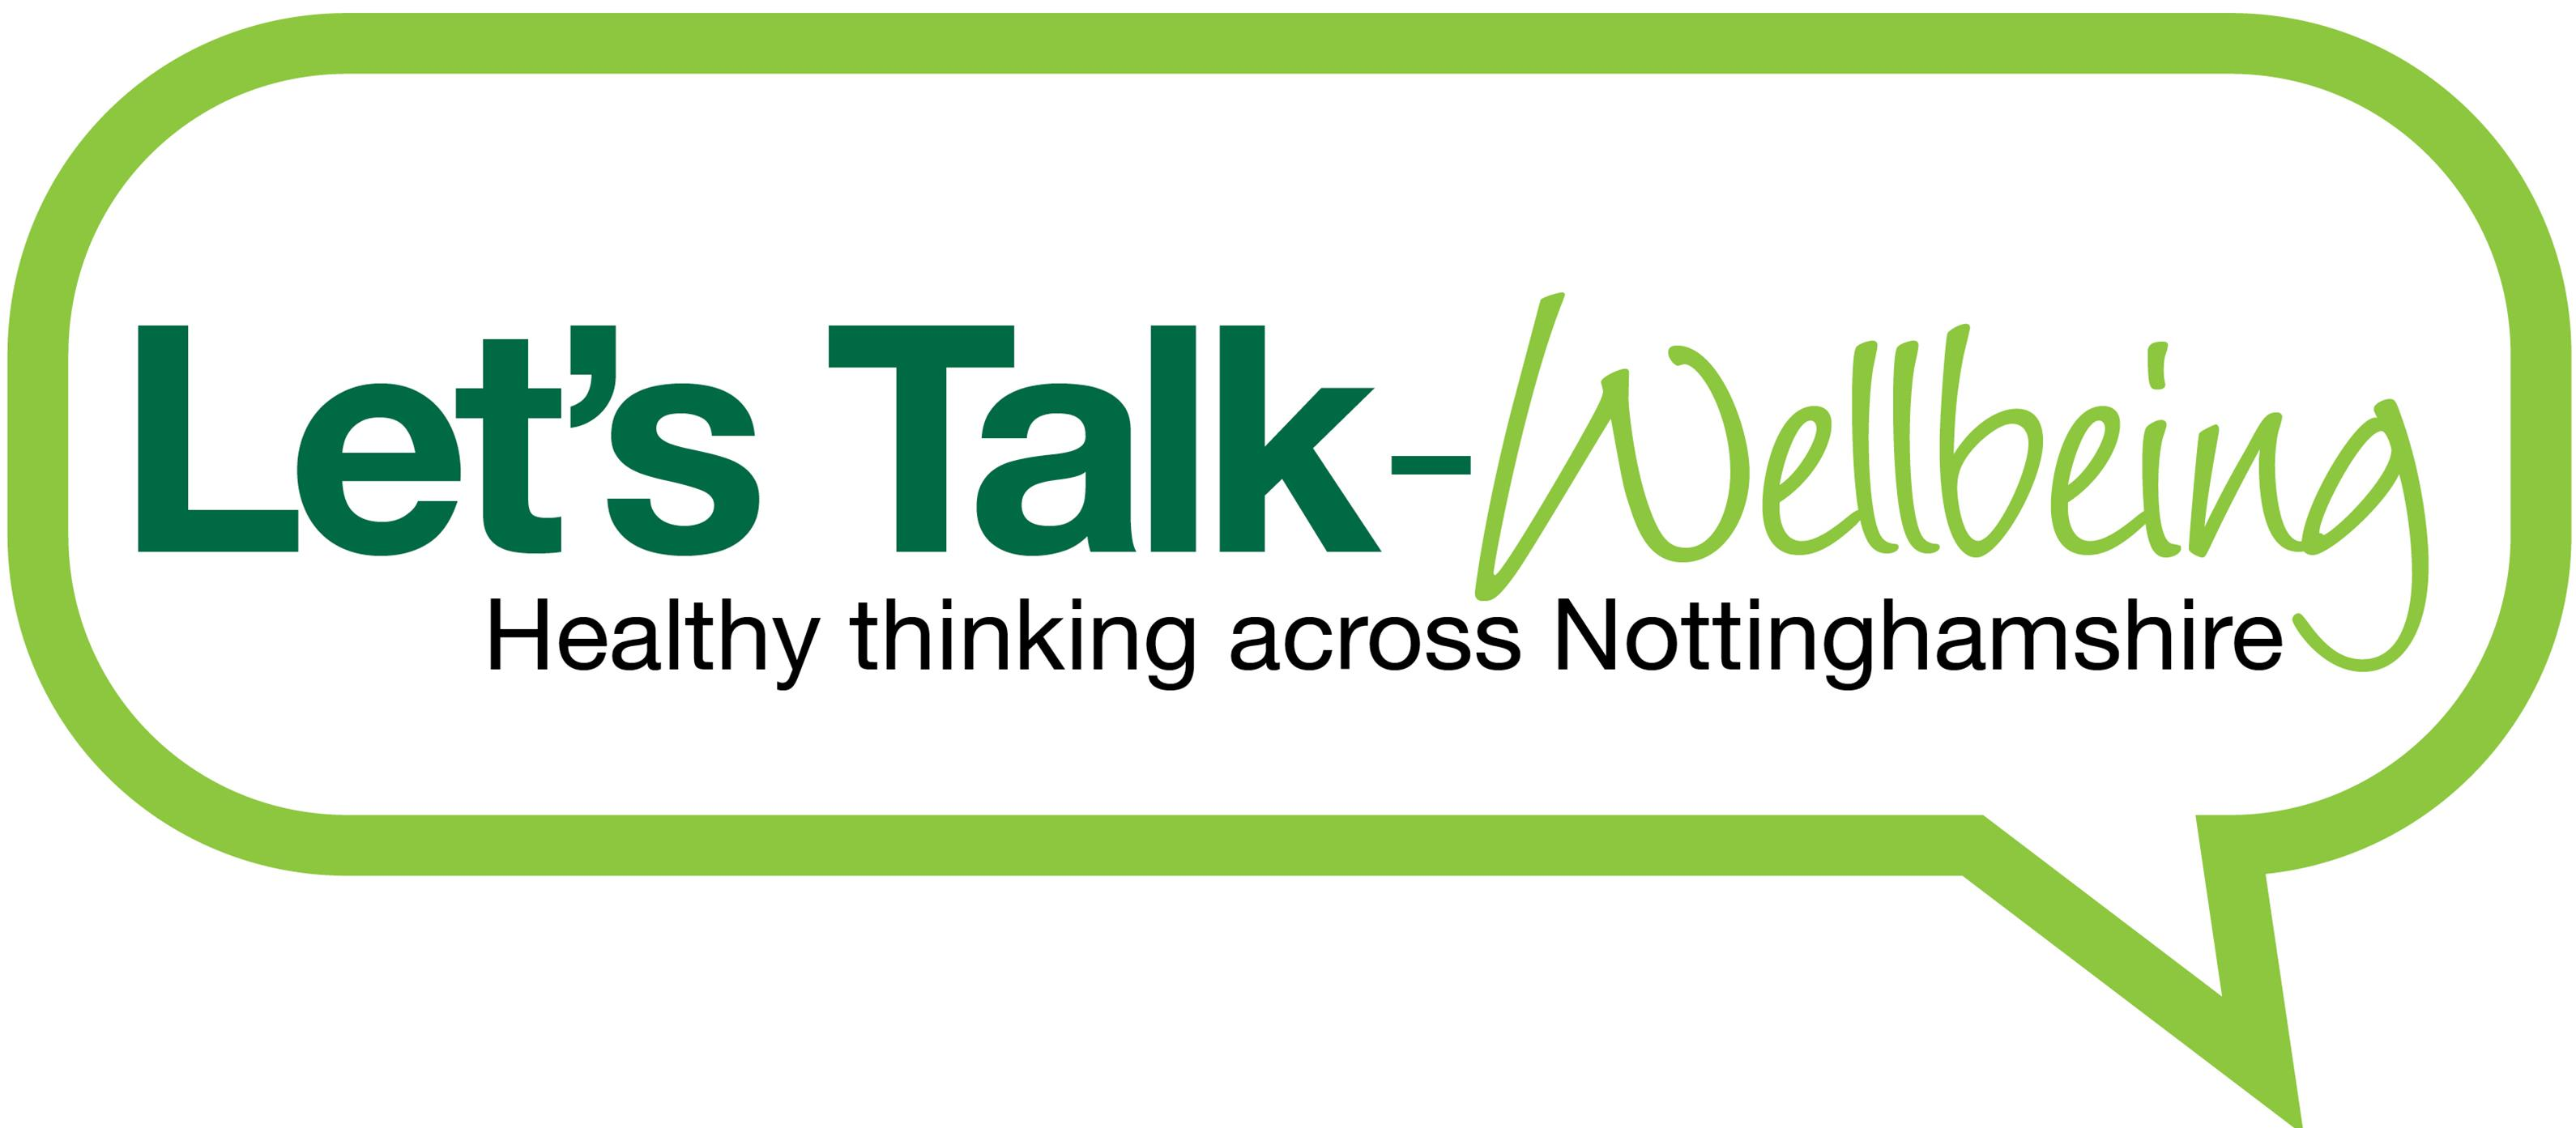 Let's talk Nottinghamshire County